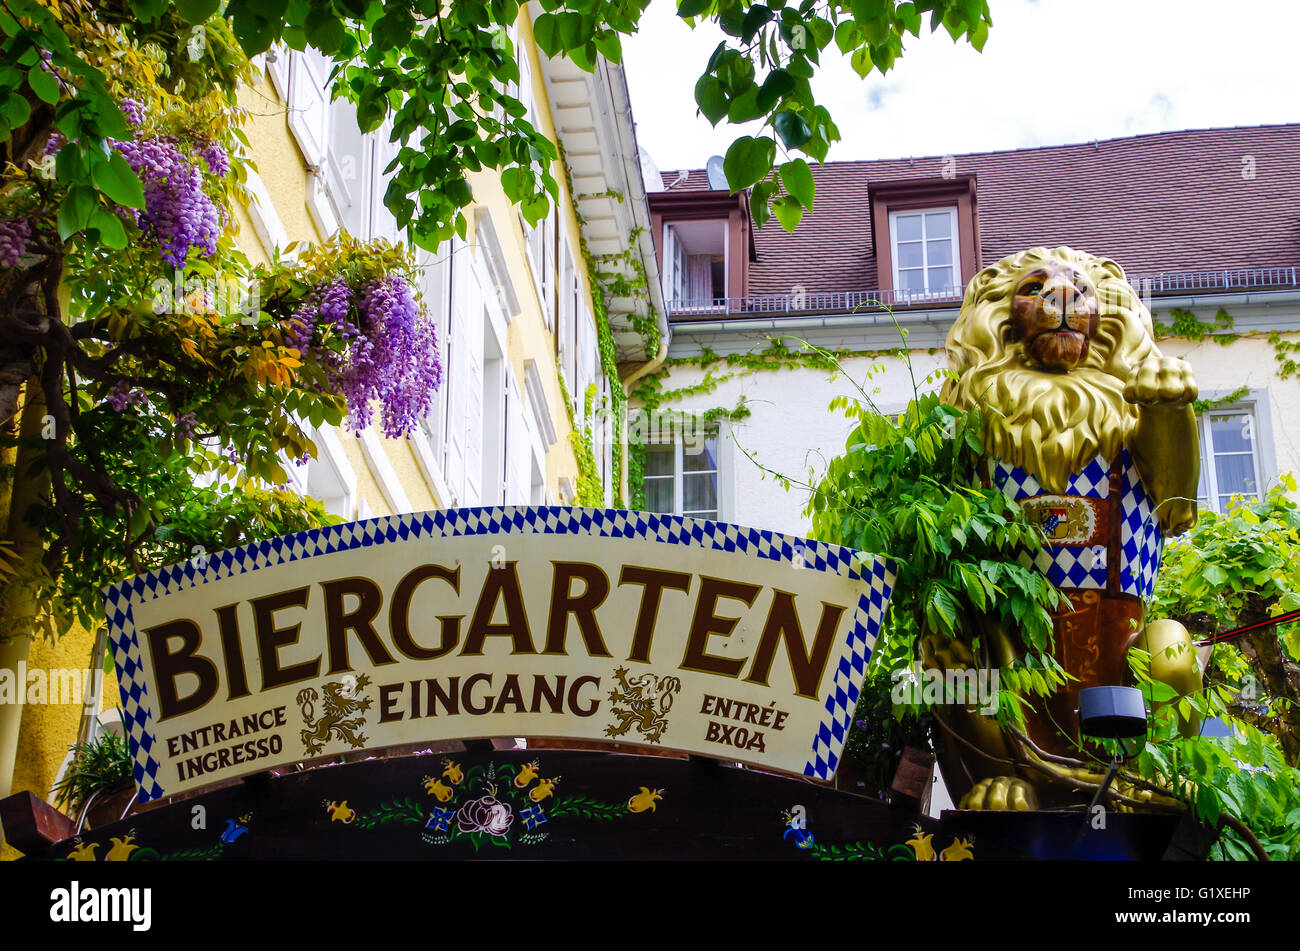 Beer Garten Typical German Biergarten Beer Garden Entrance In Baden